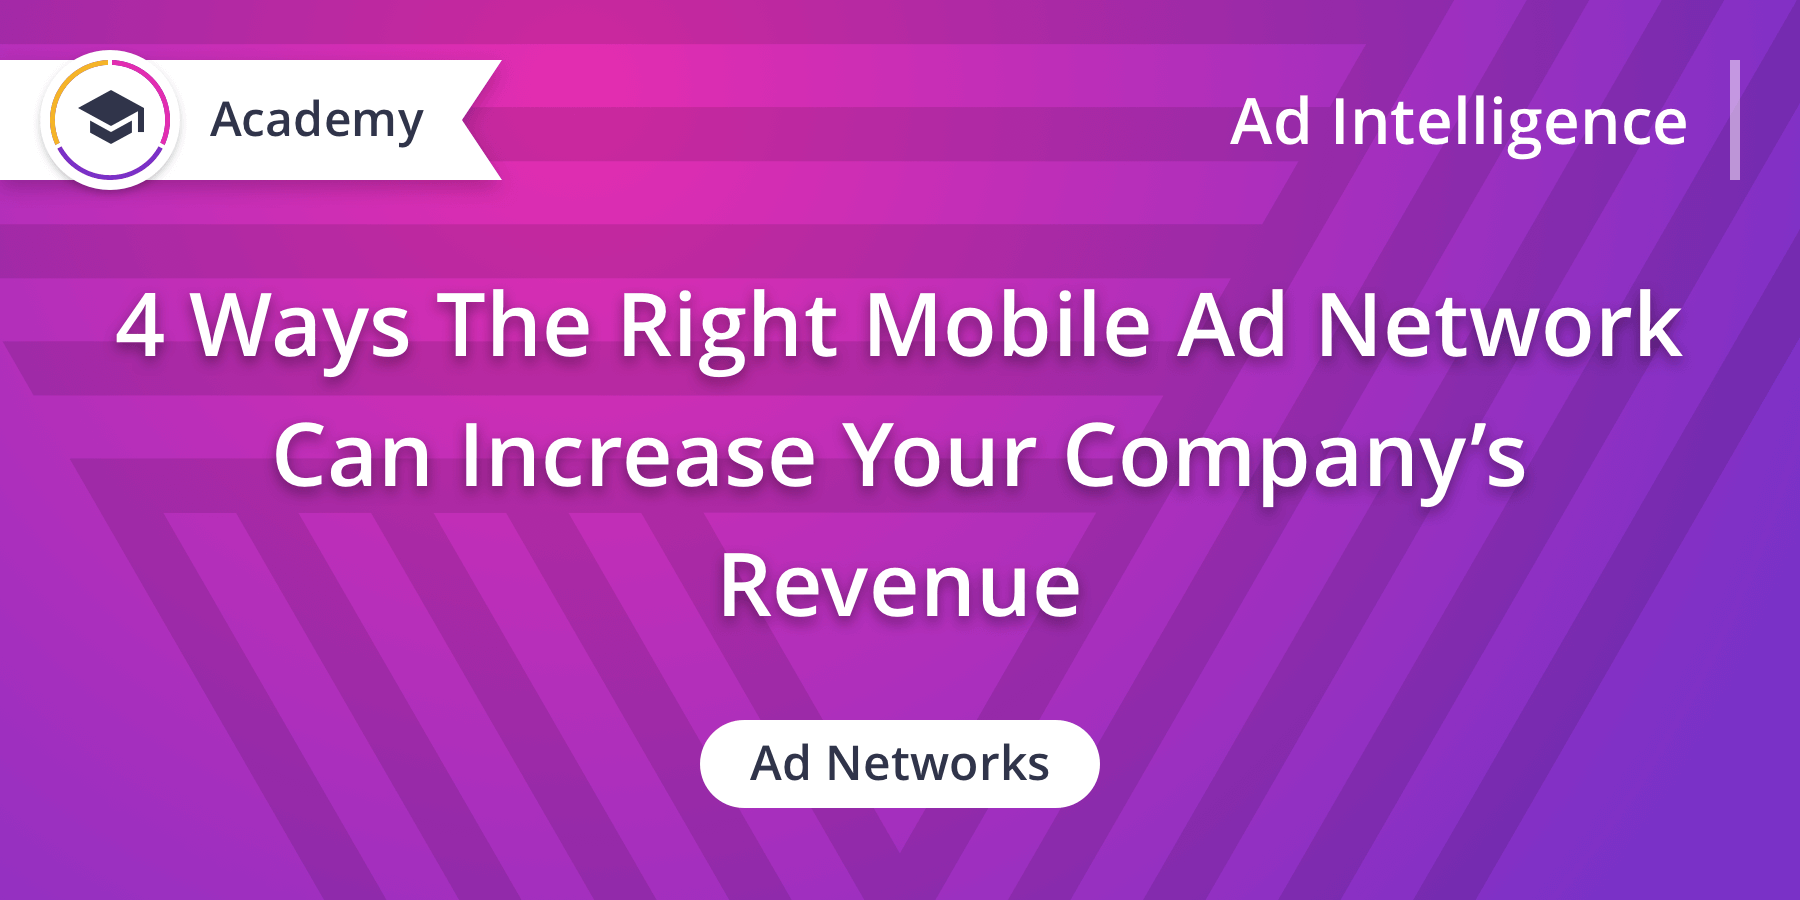 4 Ways The Right Mobile Ad Network Increases Revenue